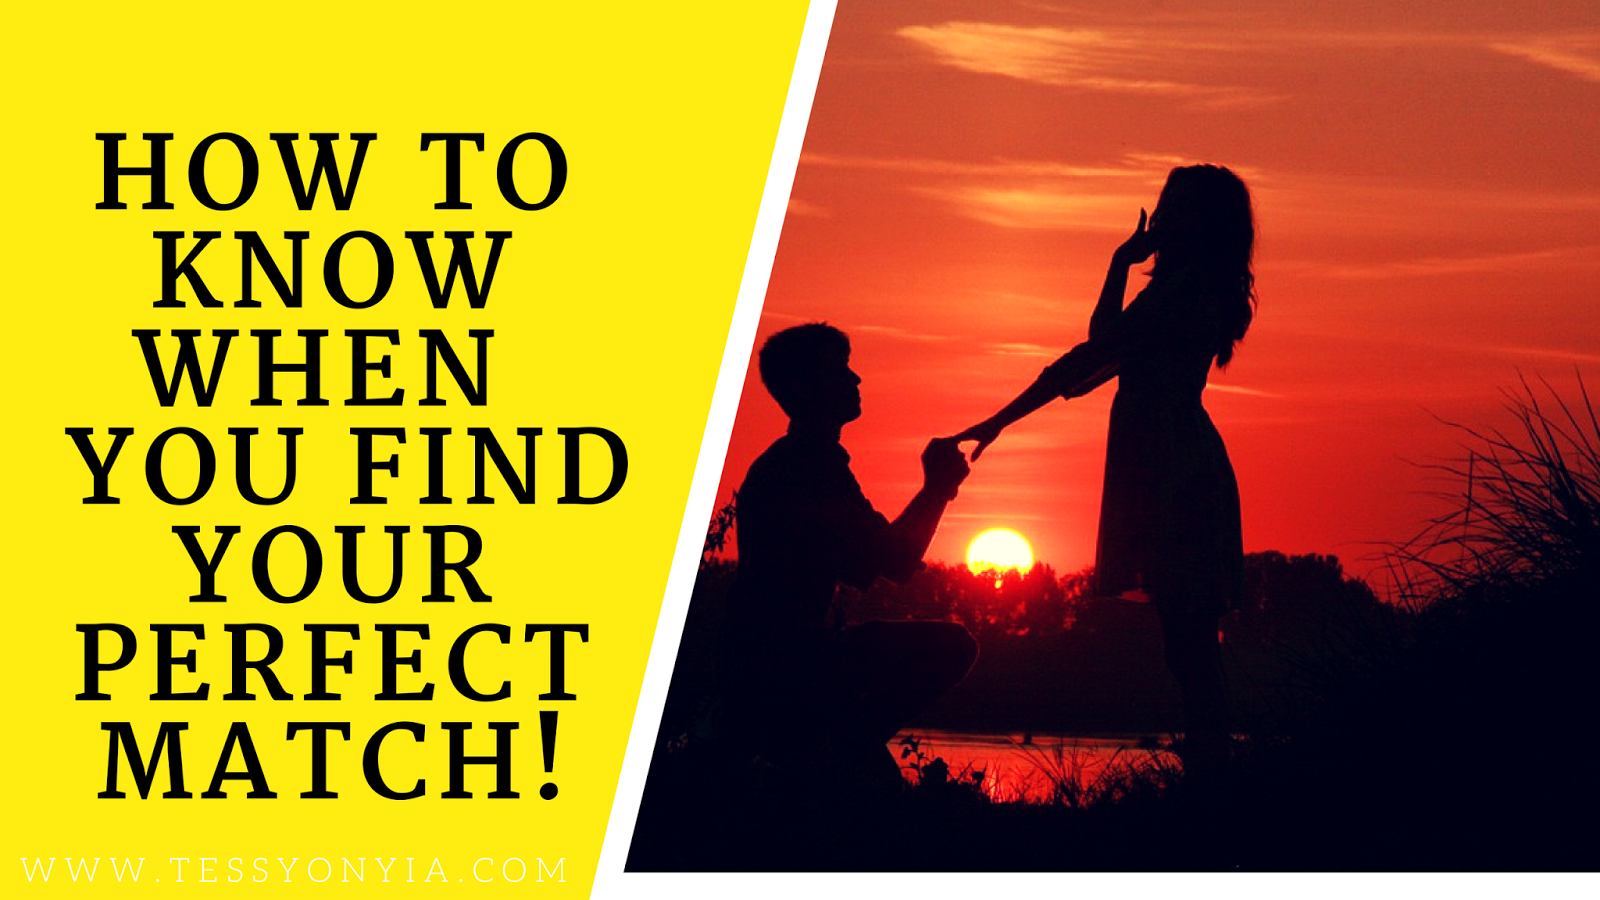 HOW TO KNOW WHEN YOU FIND YOUR PERFECT MATCH!